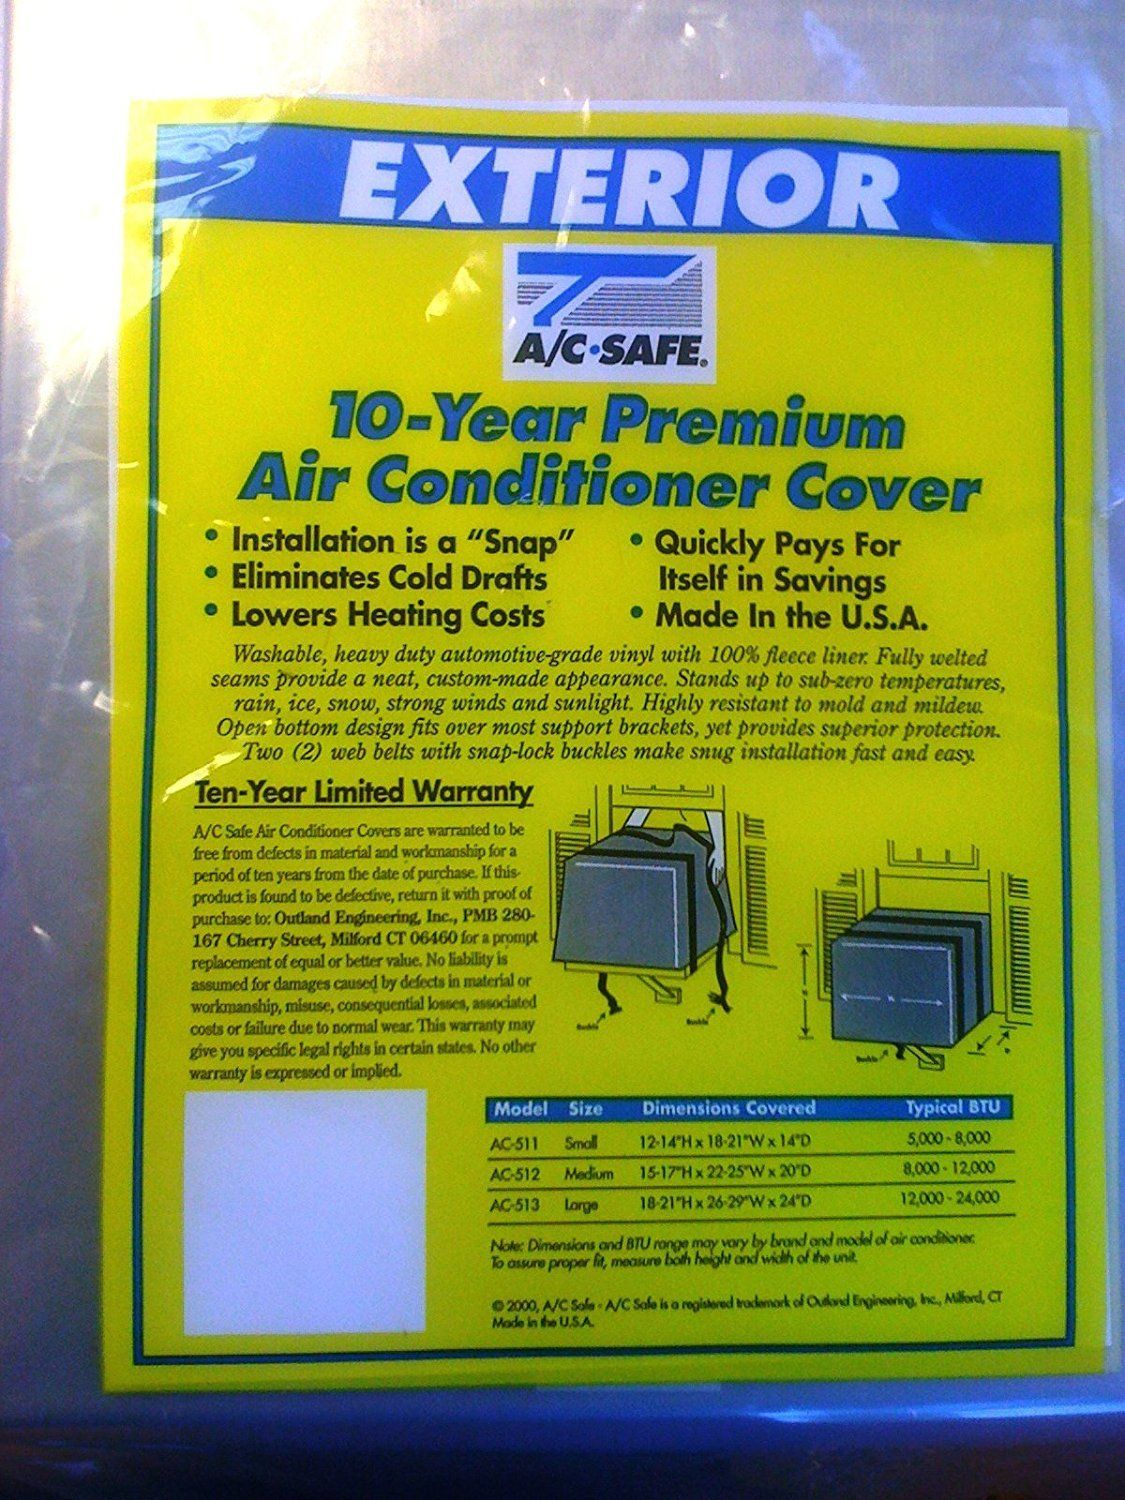 AIR CONDITIONING WINDOW UNIT LARGE EXTERIOR COVER >>> Much